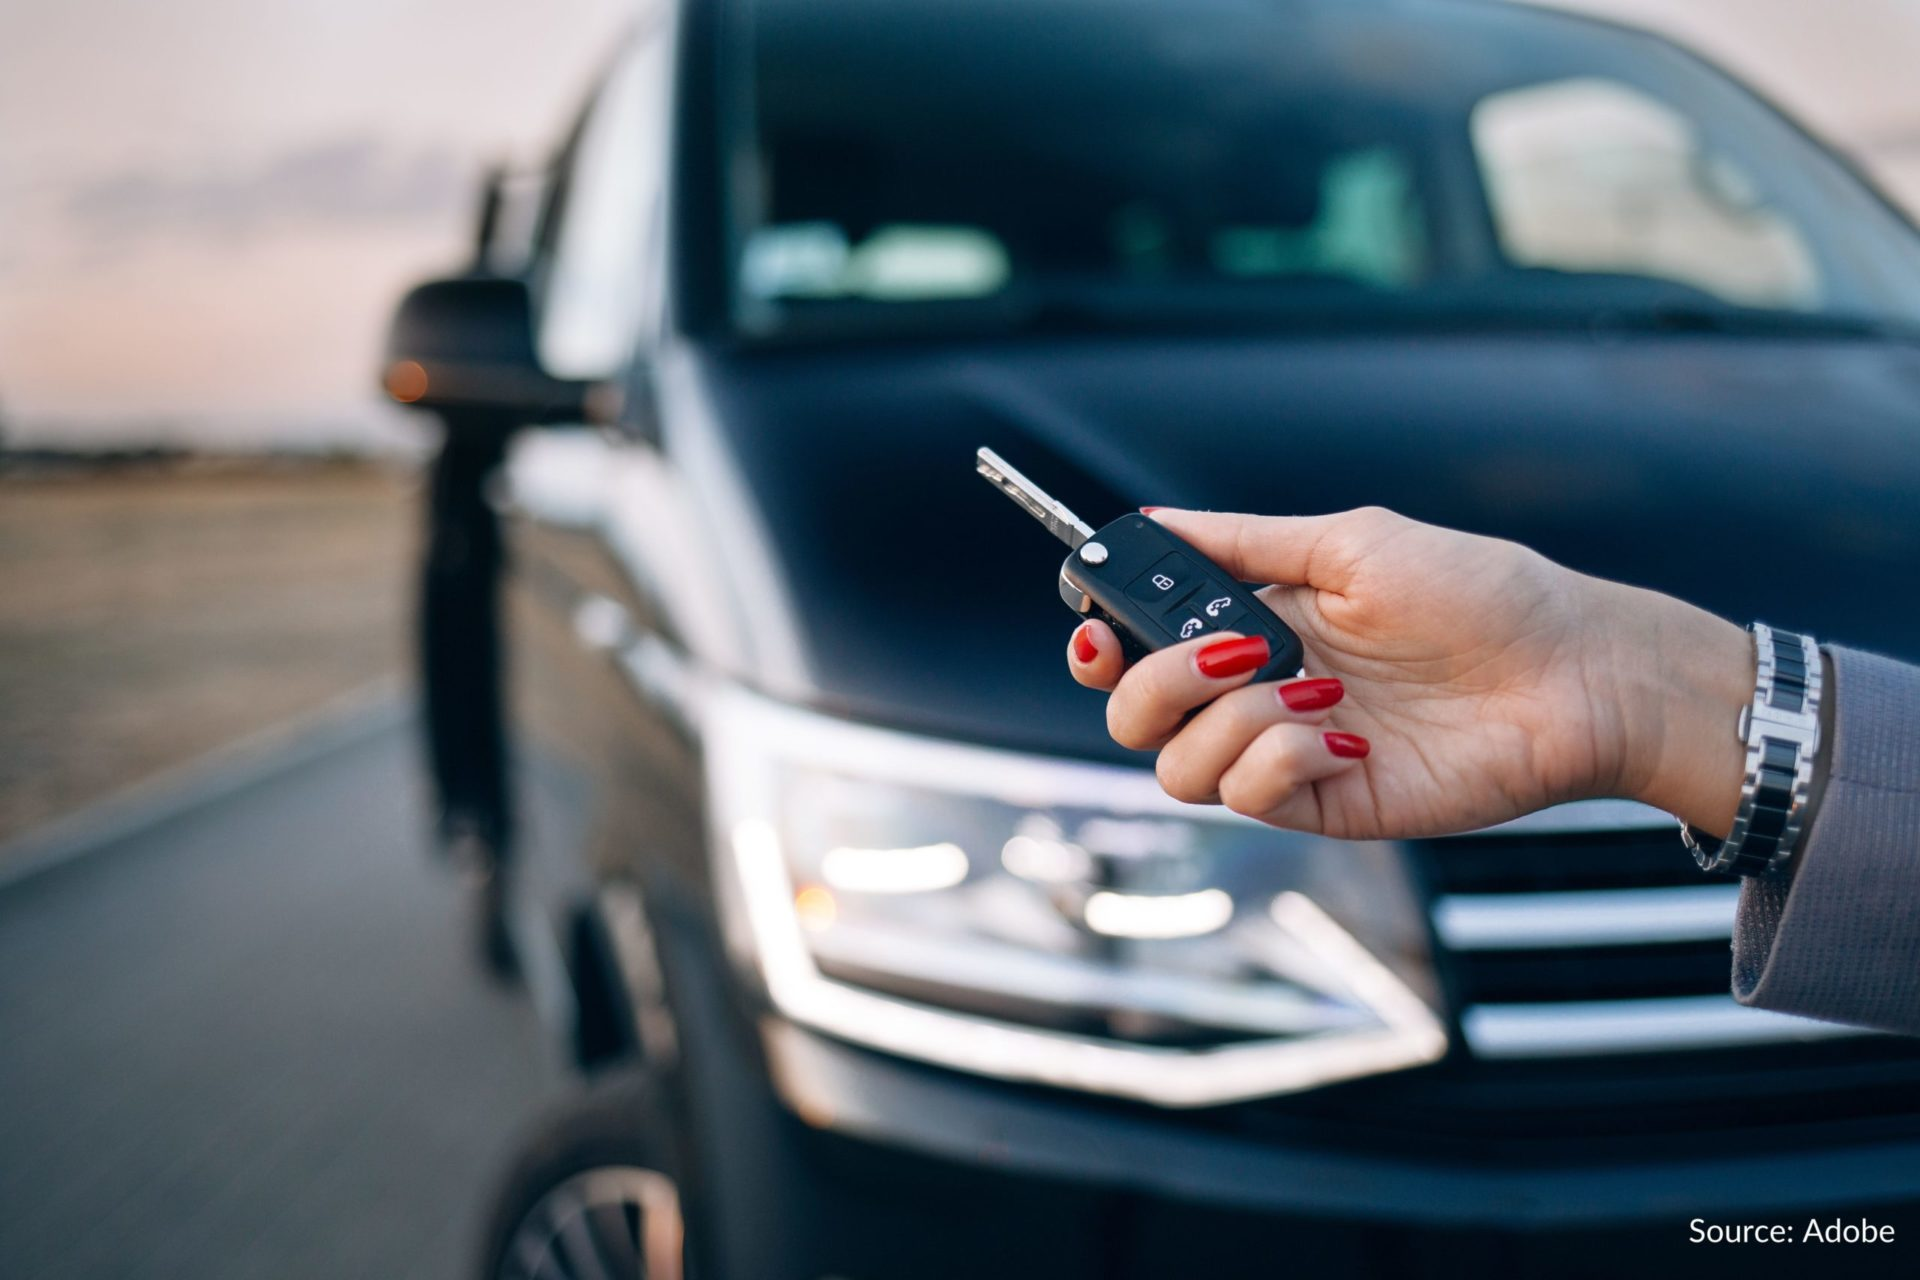 Someone holds a key fob for a black vehicle.